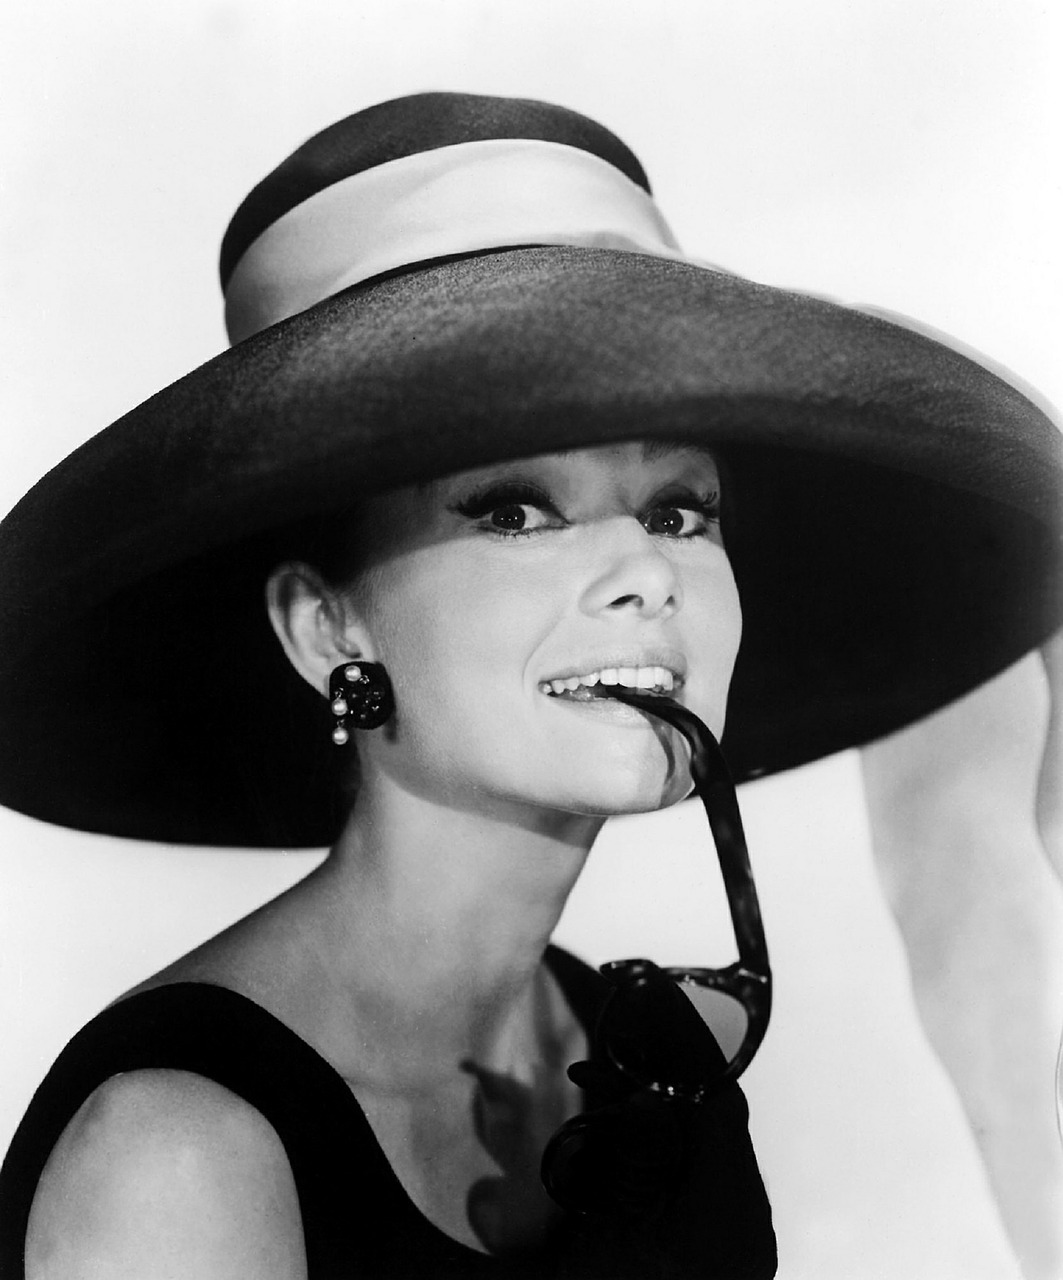 audrey hepburn, the belgian actress who starred  breakfast at tiffany's